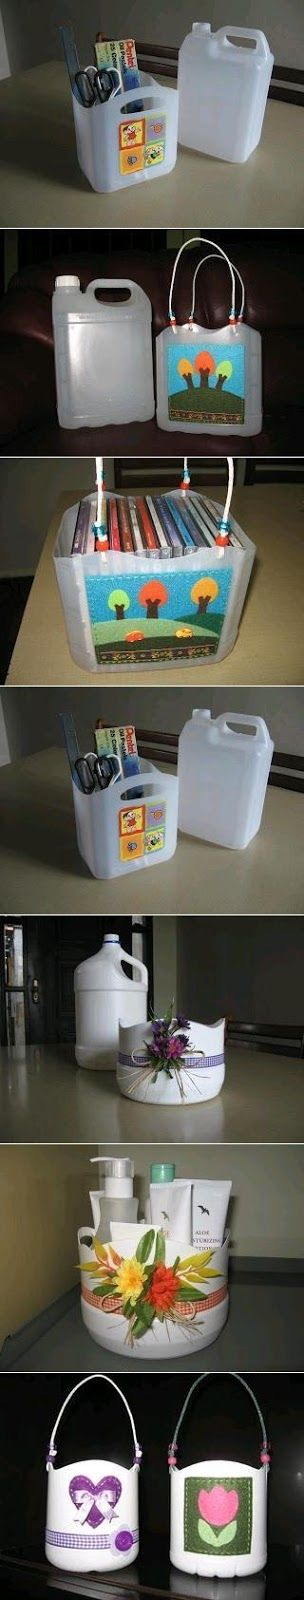 Great idea for our Empty Shampoo bottlesUpcycle / Re-use old milk cartons or plastic jugs....